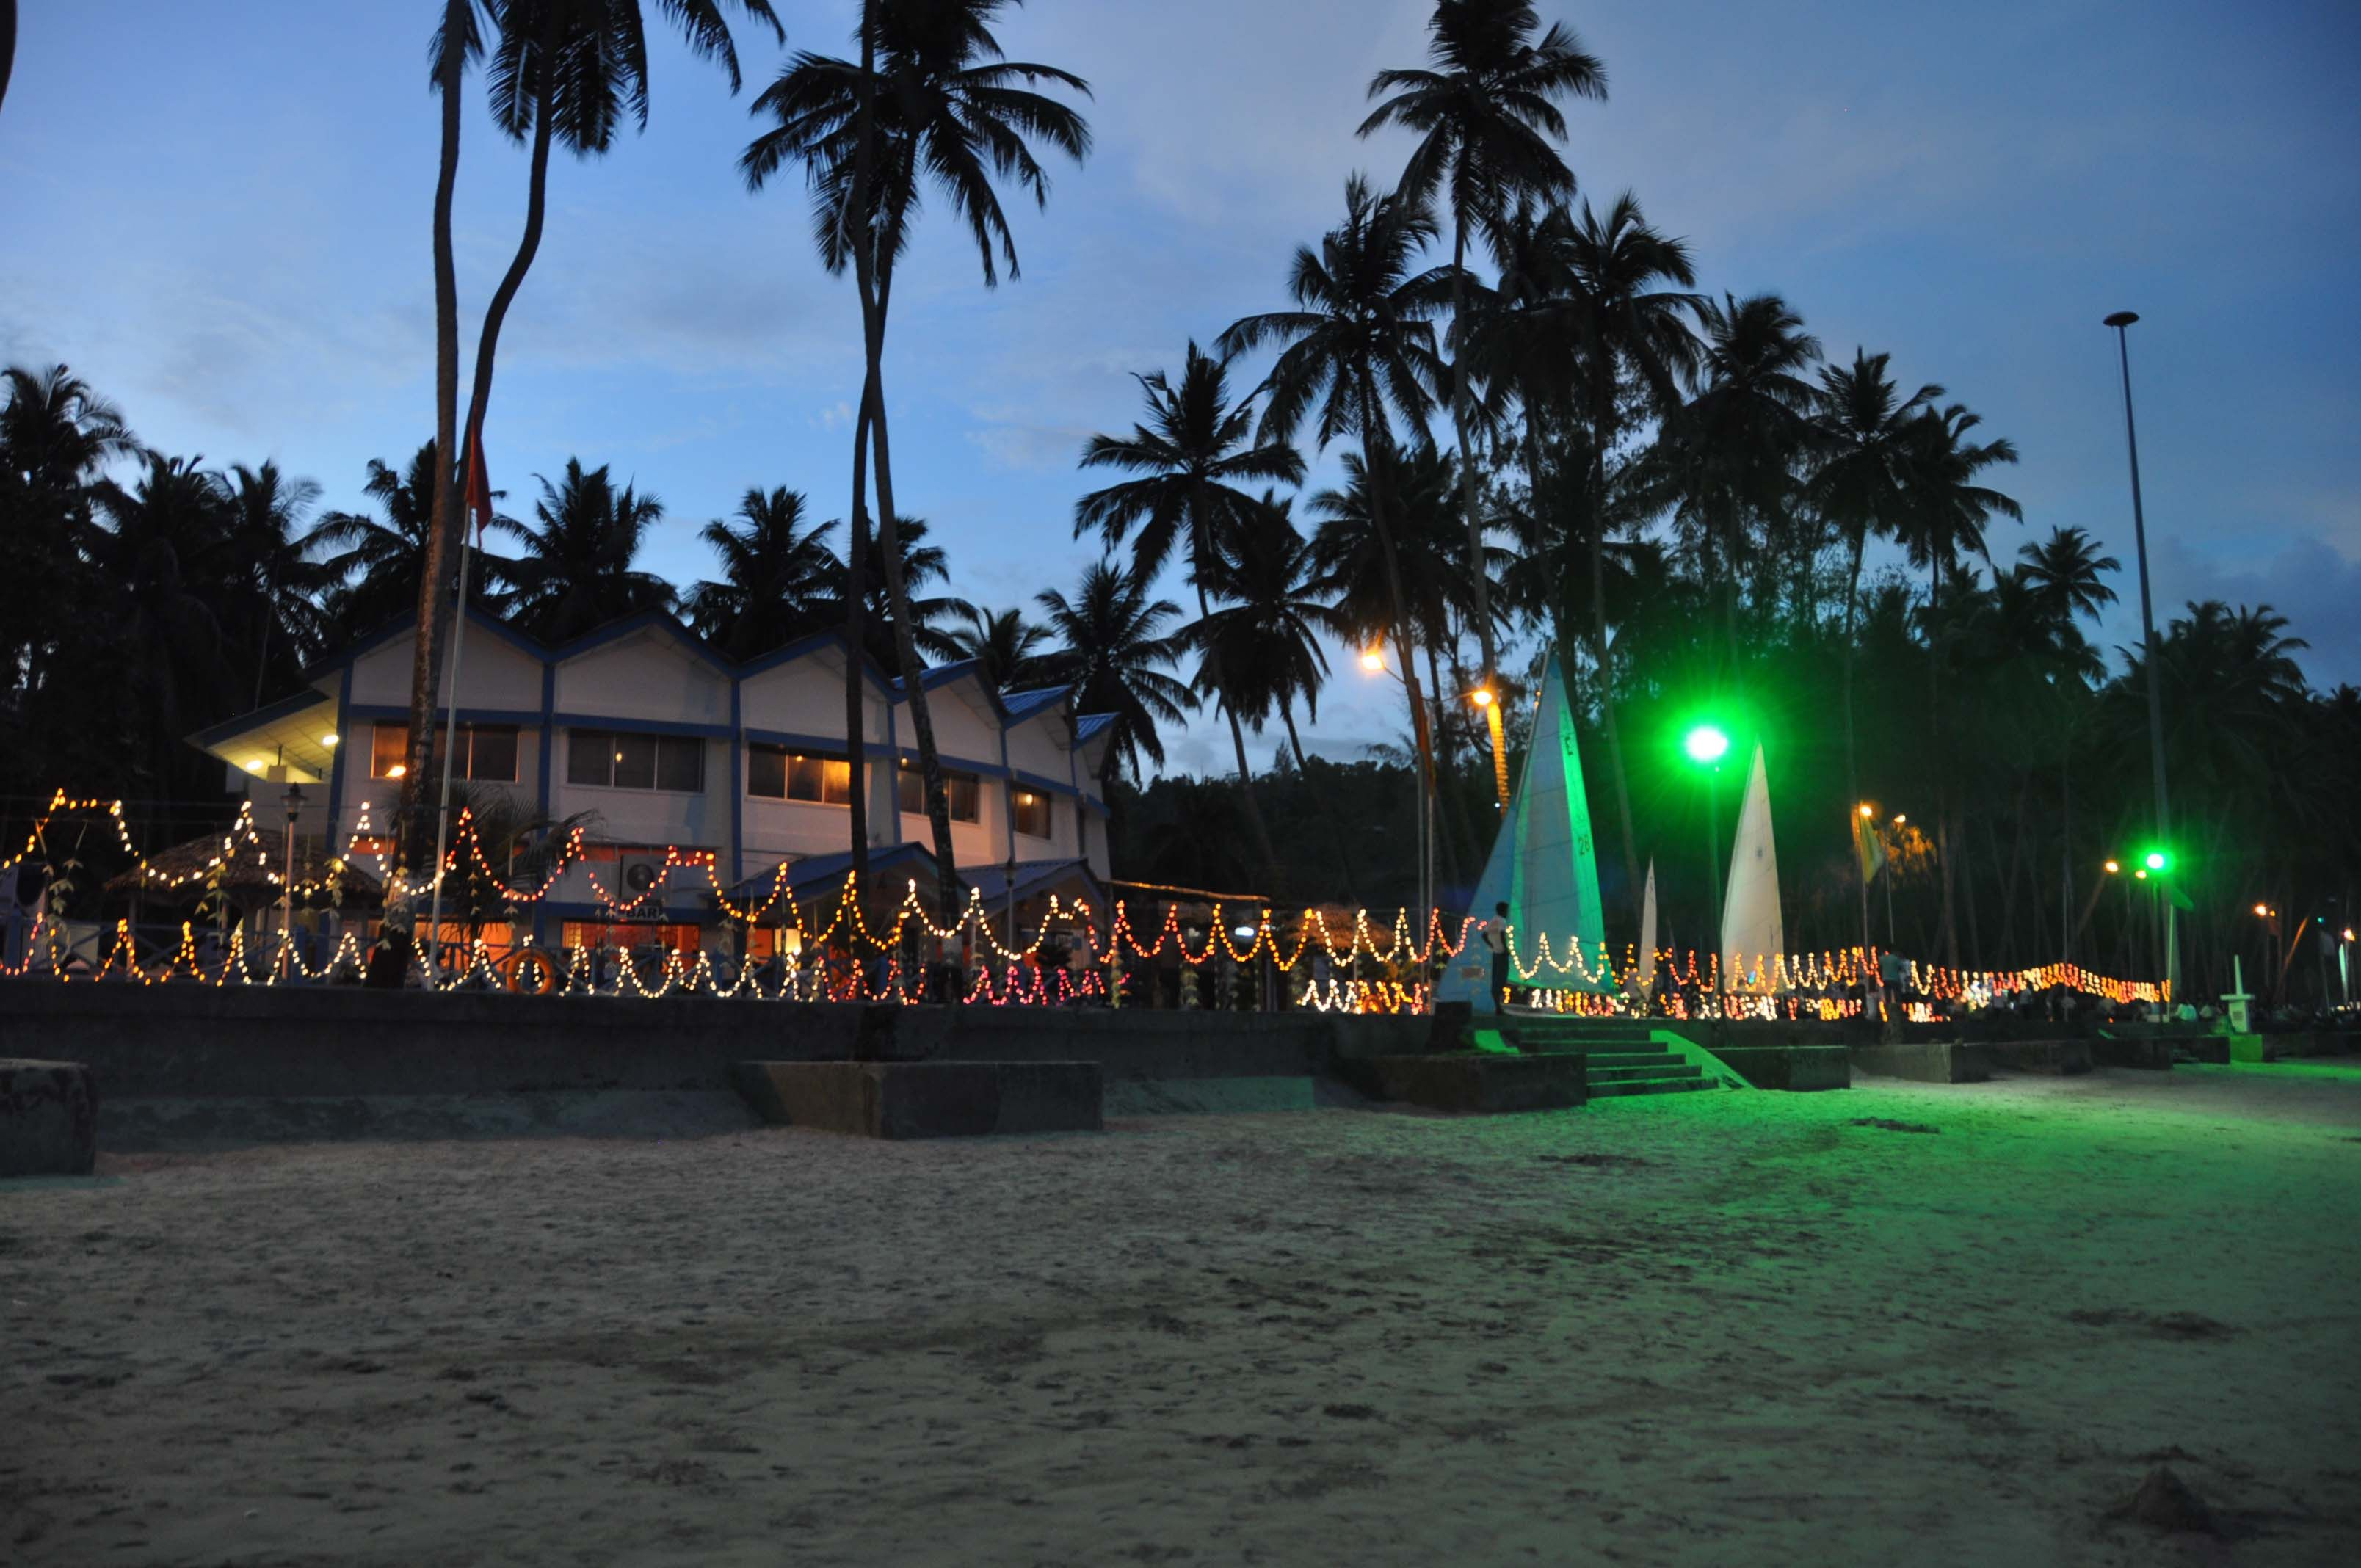 Andaman beach festival is one of the interesting activity